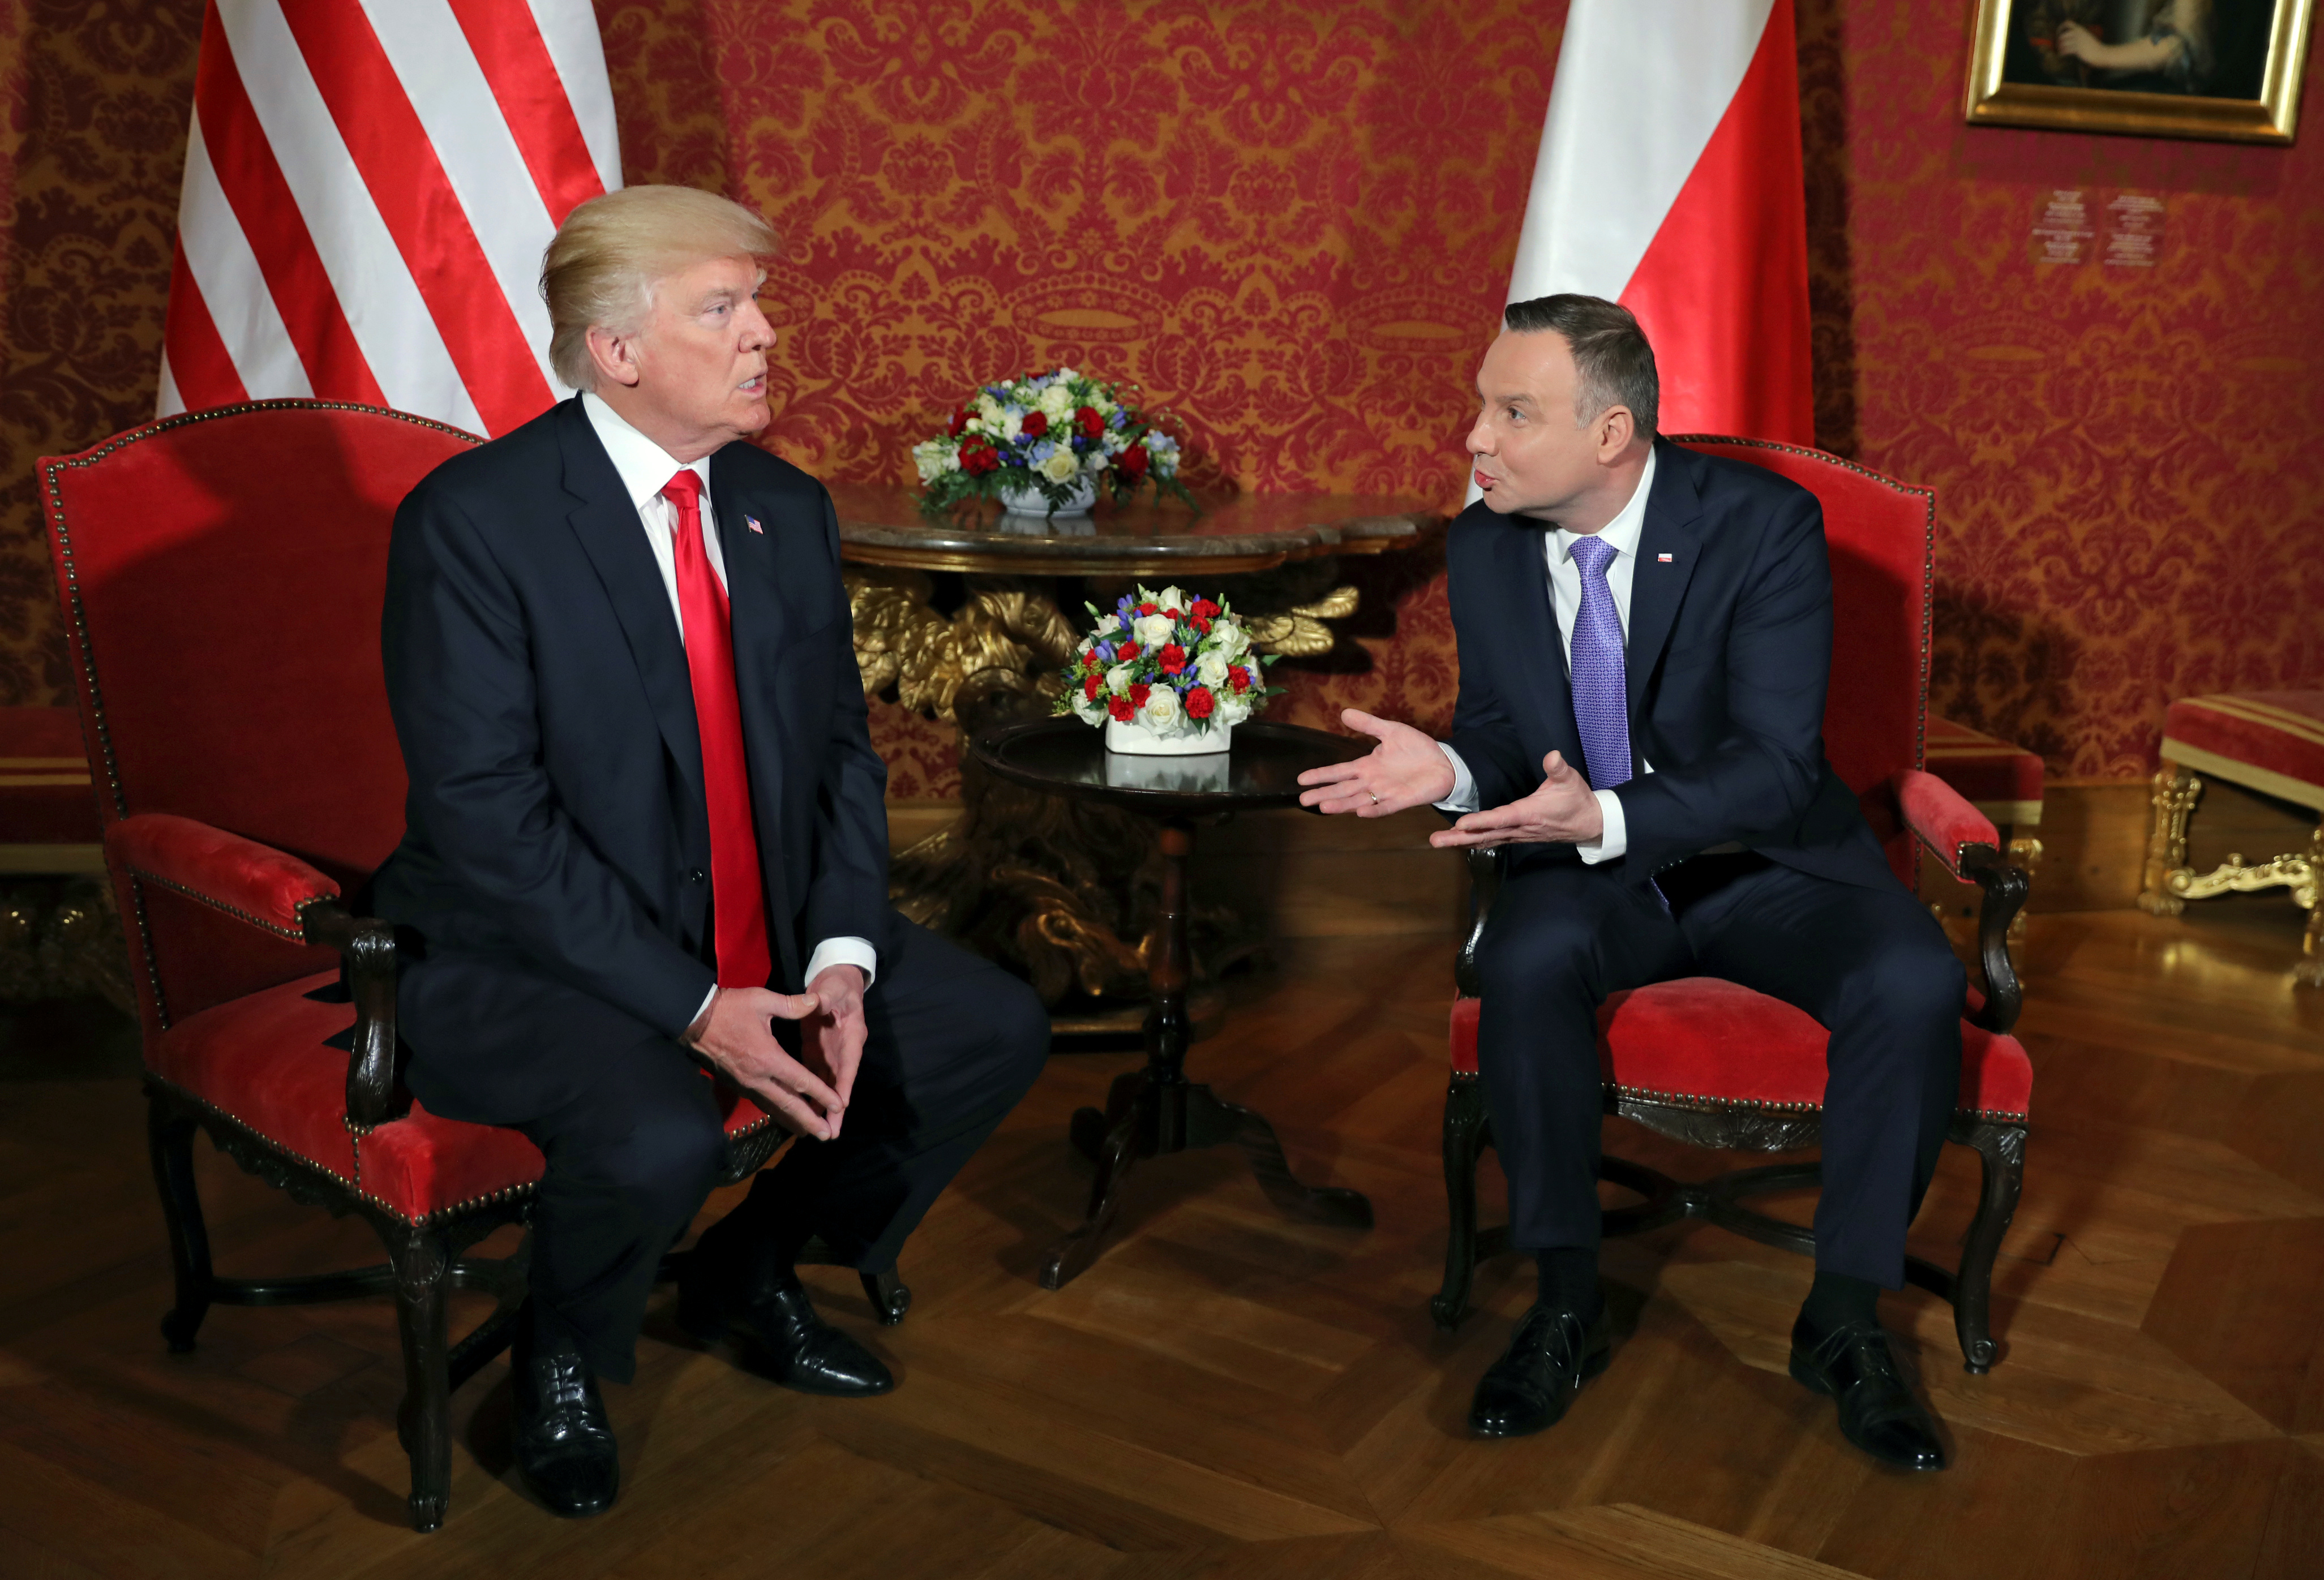 U.S. President Donald Trump talks with Polish President Andrzej Duda during their bilateral meeting, as he visits Poland for the Three Seas Initiative Summit in Warsaw, Poland July 6, 2017. REUTERS/Carlos Barria     TPX IMAGES OF THE DAY - RC135D568260